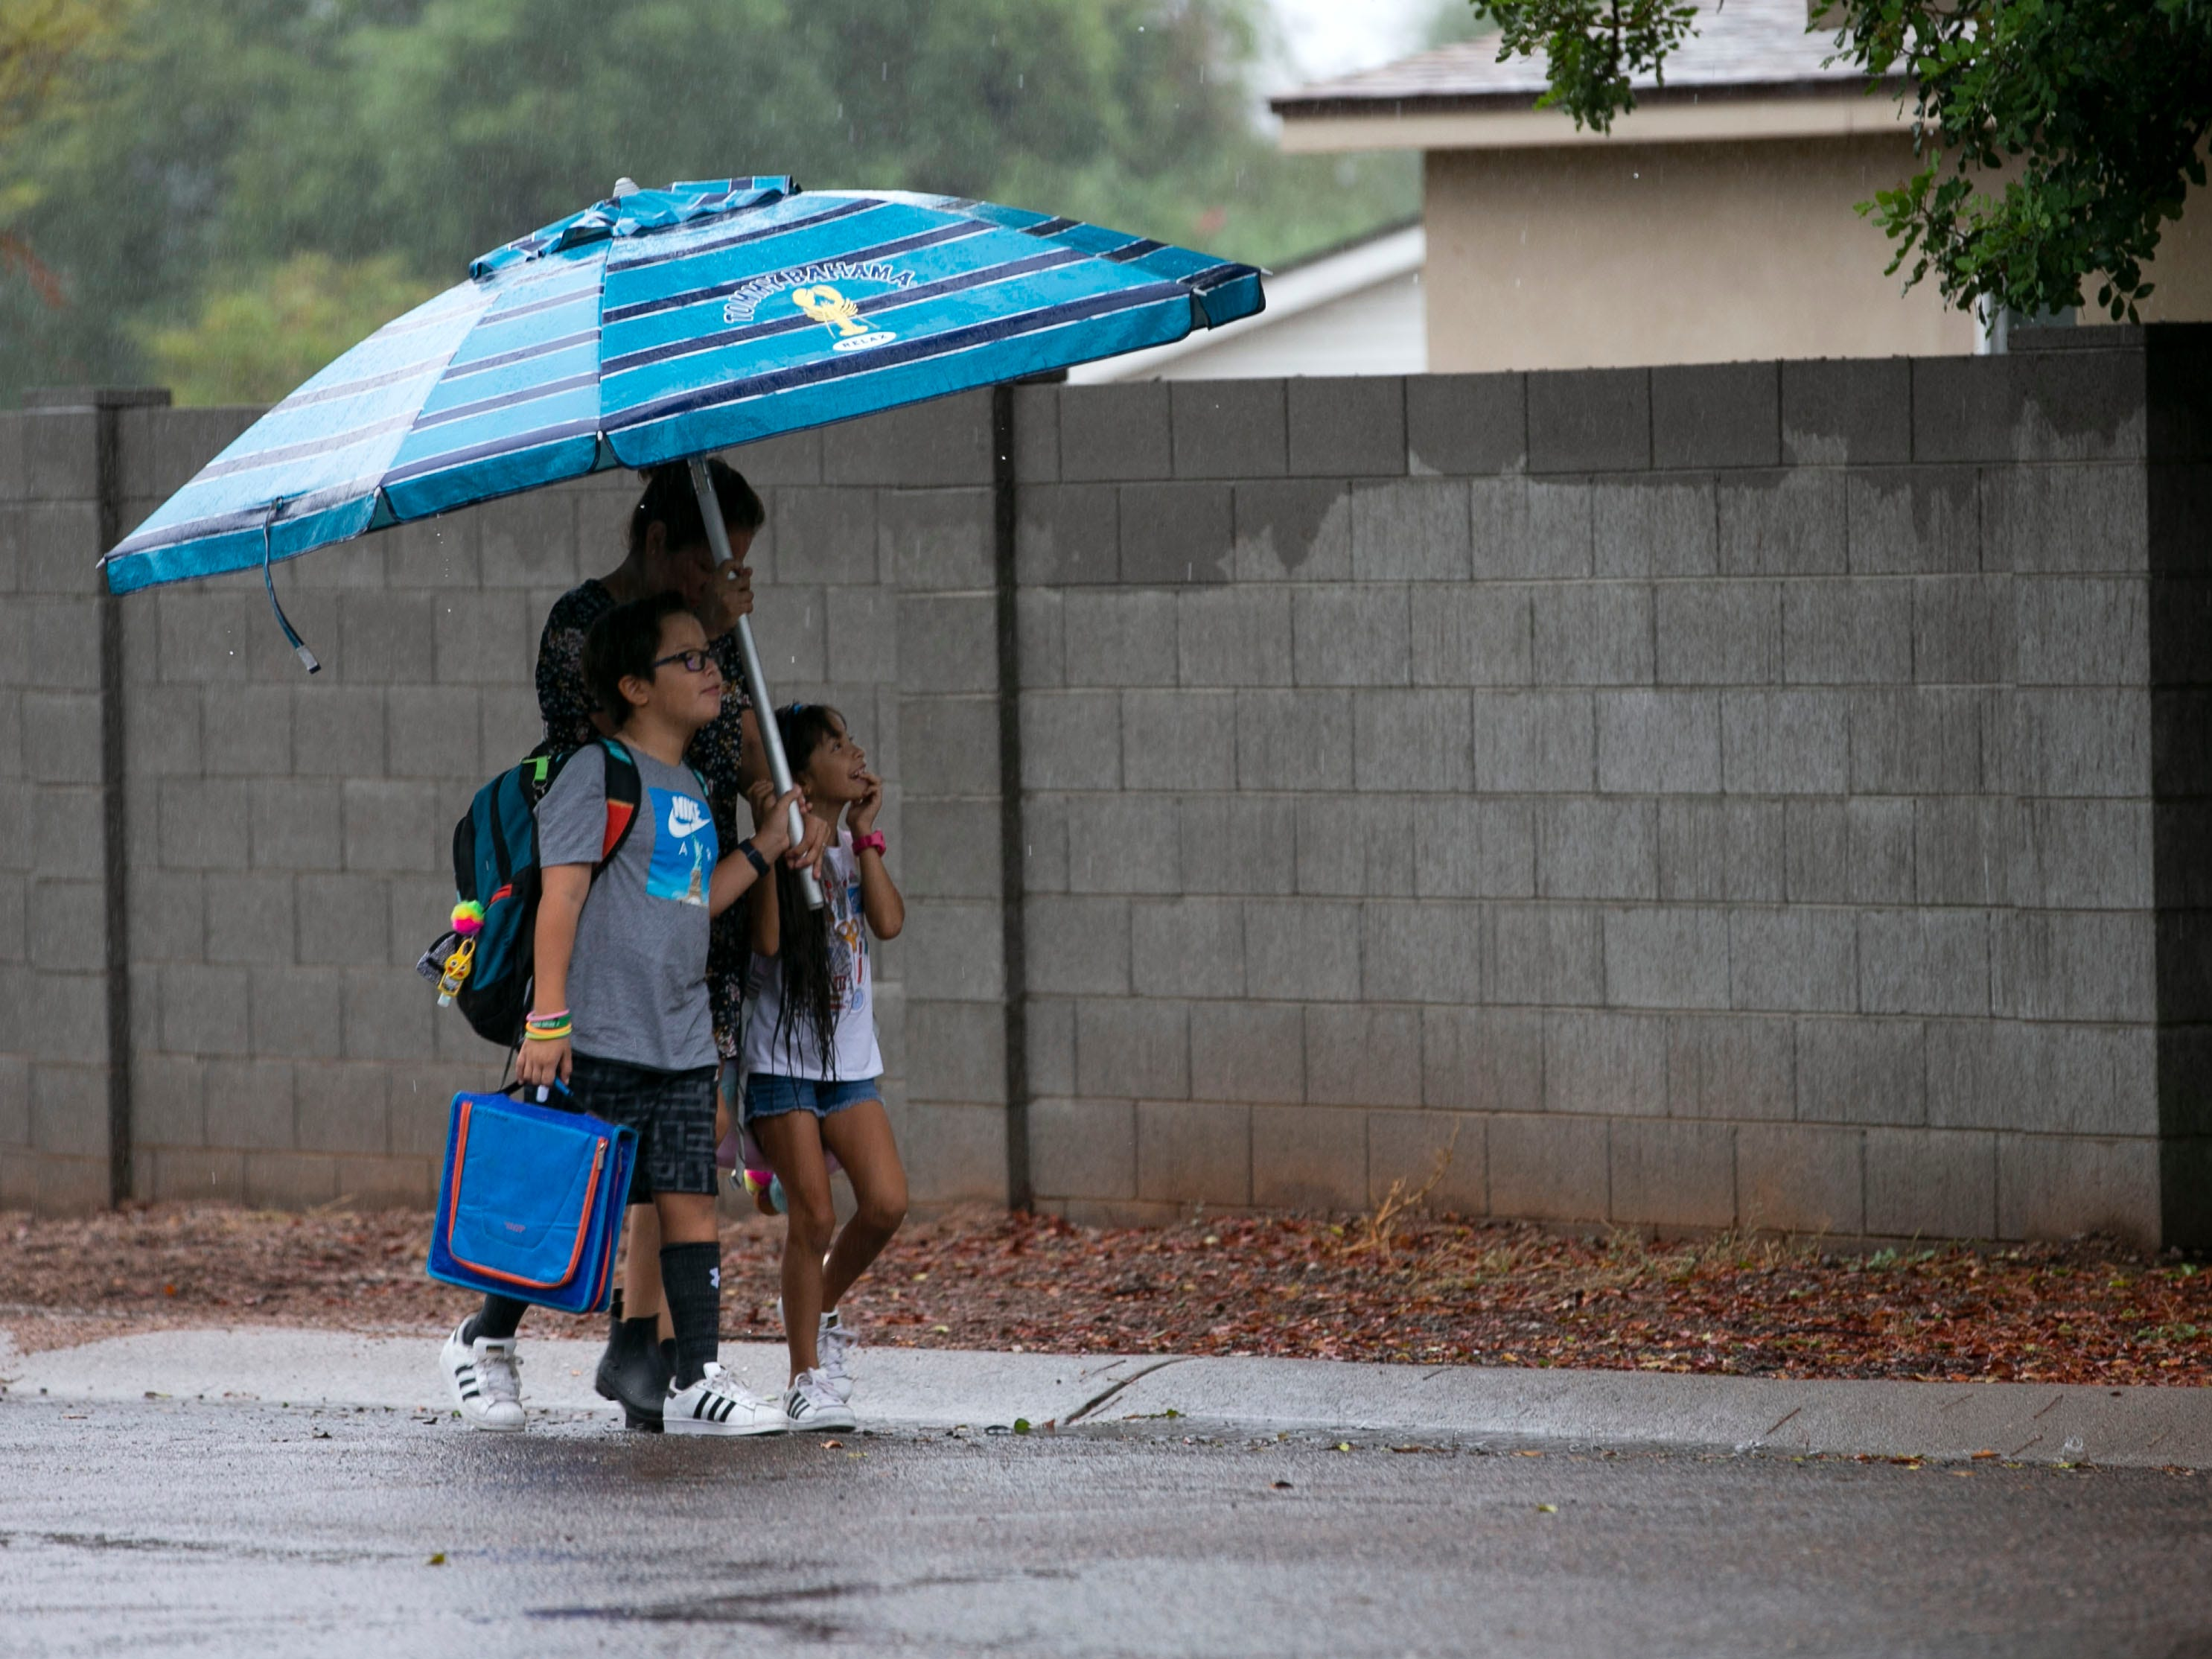 Under a pool umbrella, Lucy Gomez and her children Ray Gomez, 9, and Natalia Gomez, 7, walk to the bus stop in Phoenix on Oct. 2, 2018. The remnants of Hurricane Rosa brought rain to the Valley on Tuesday. Lucy said they used the pool umbrella because it was the only umbrella she had.